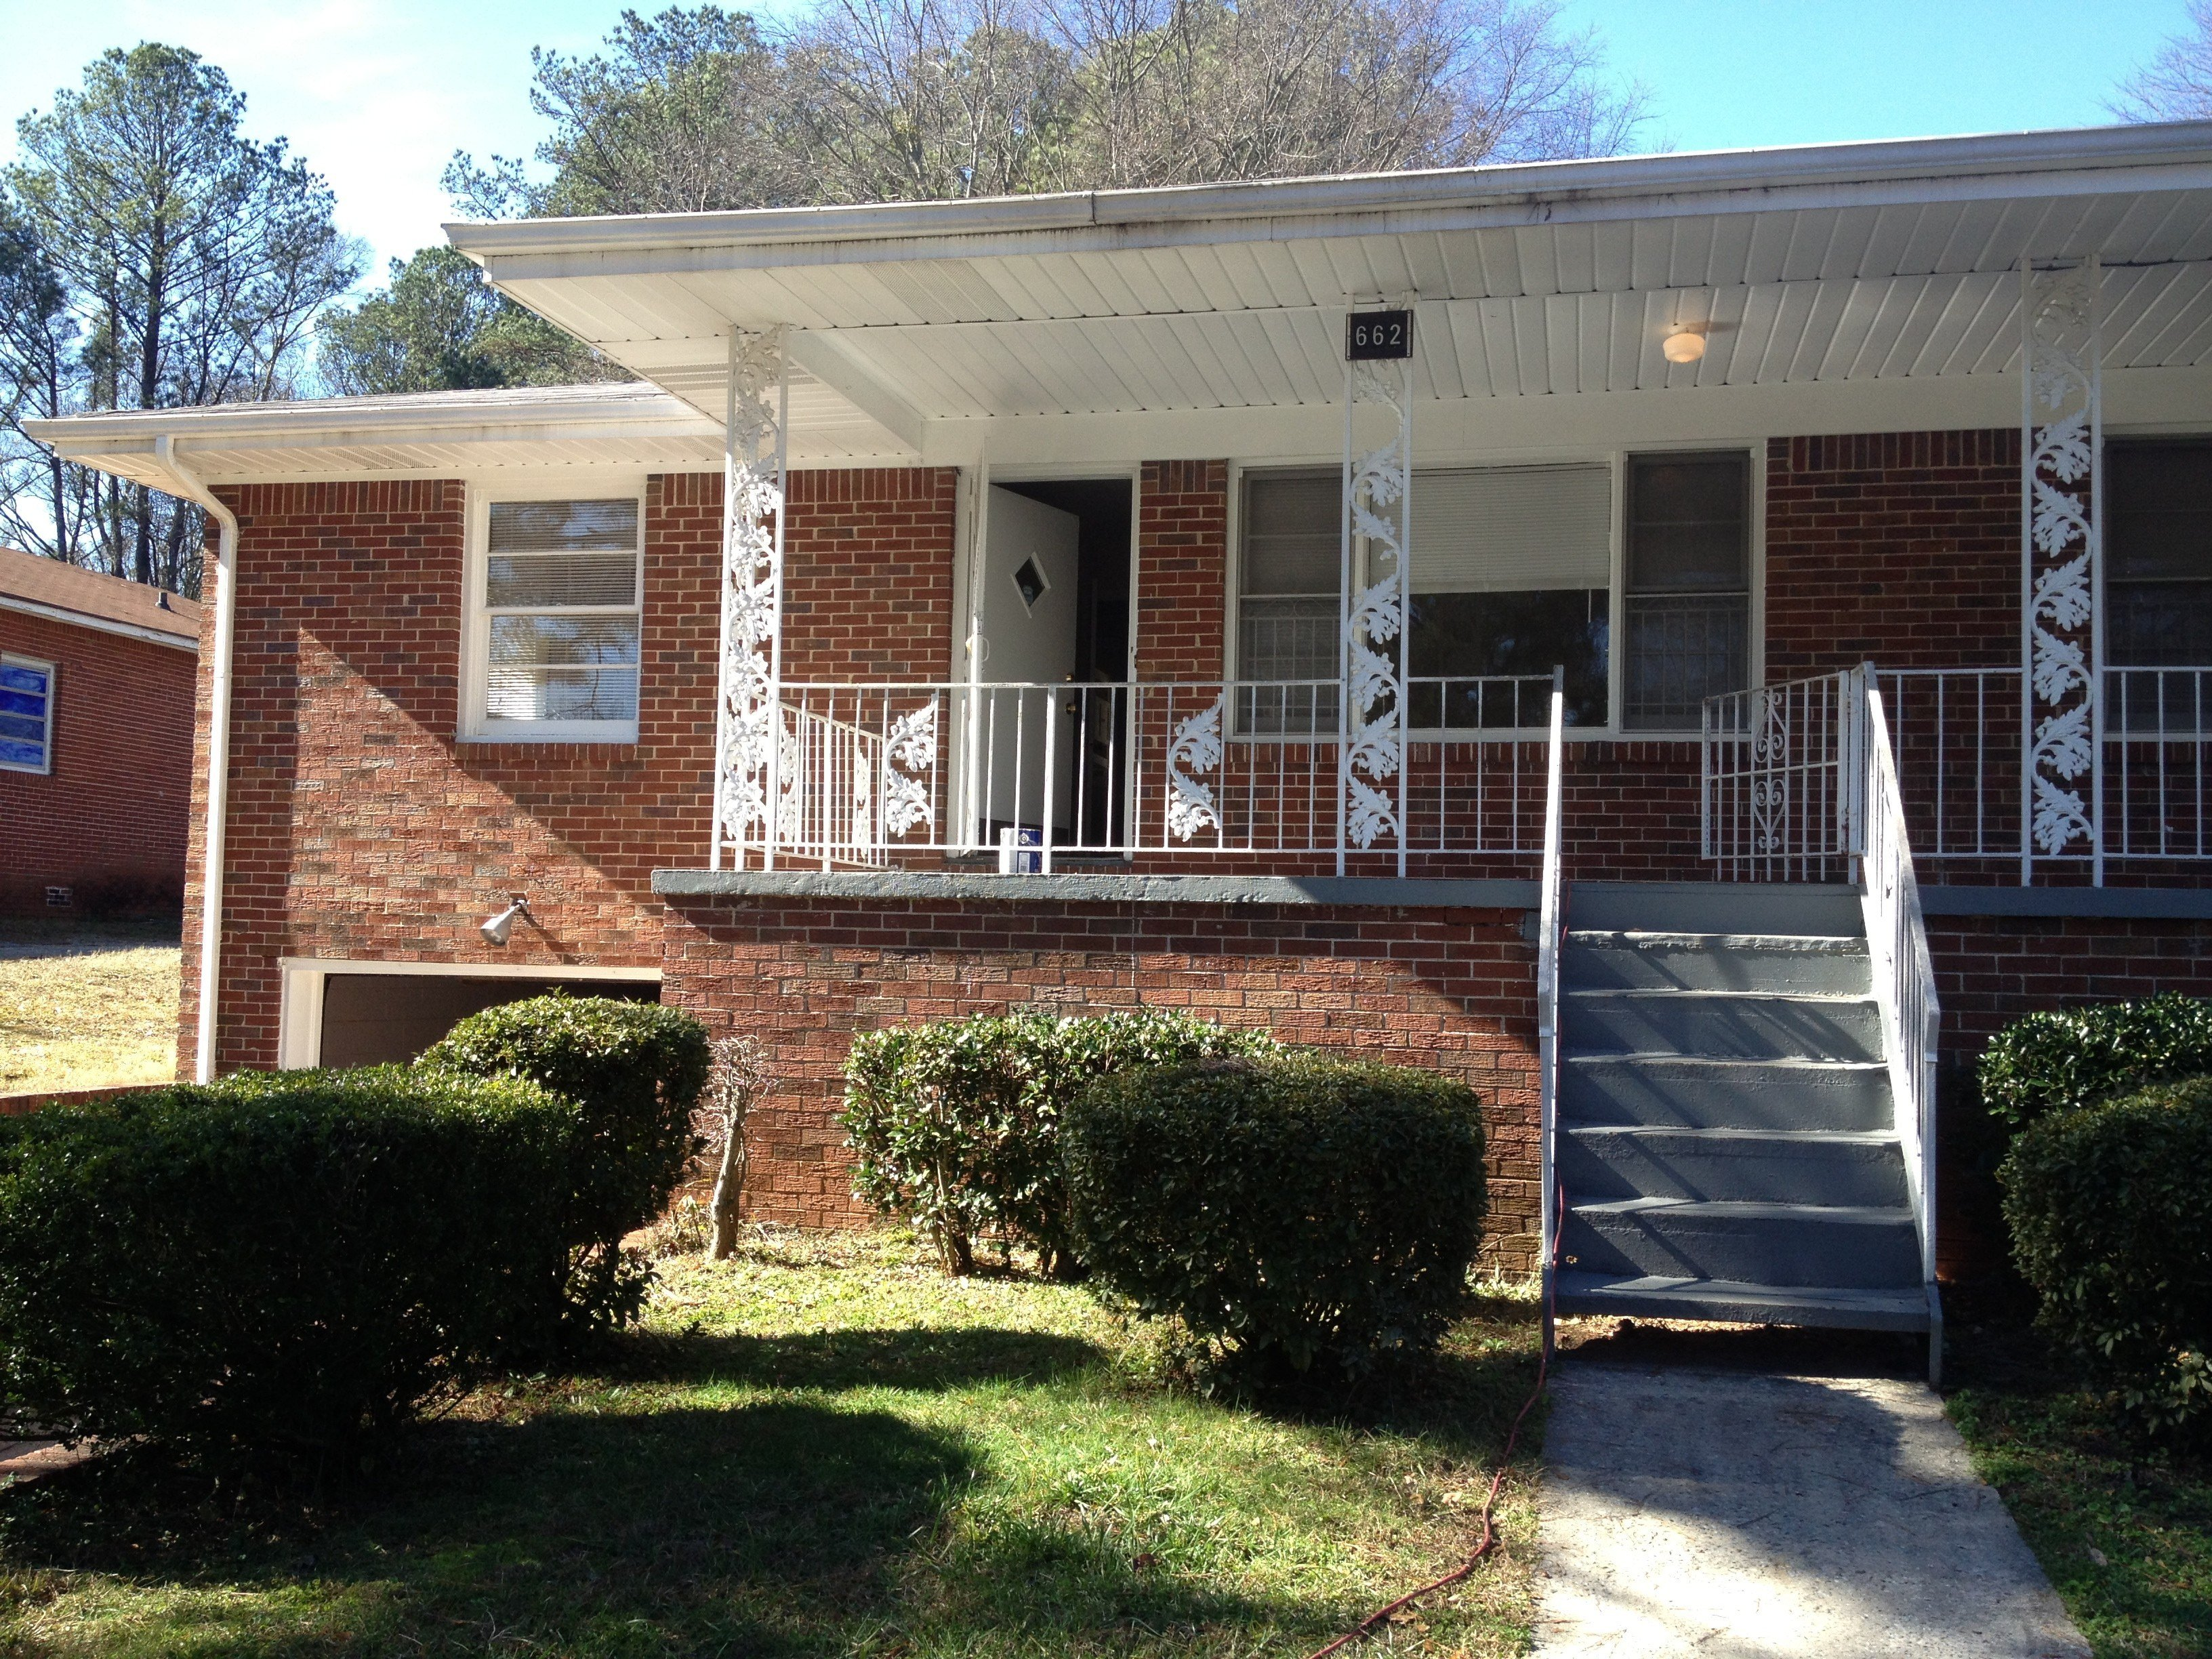 Best 662 Gary Rd Nw Atlanta Ga 30318 3 Bedroom House For Rent With Pictures